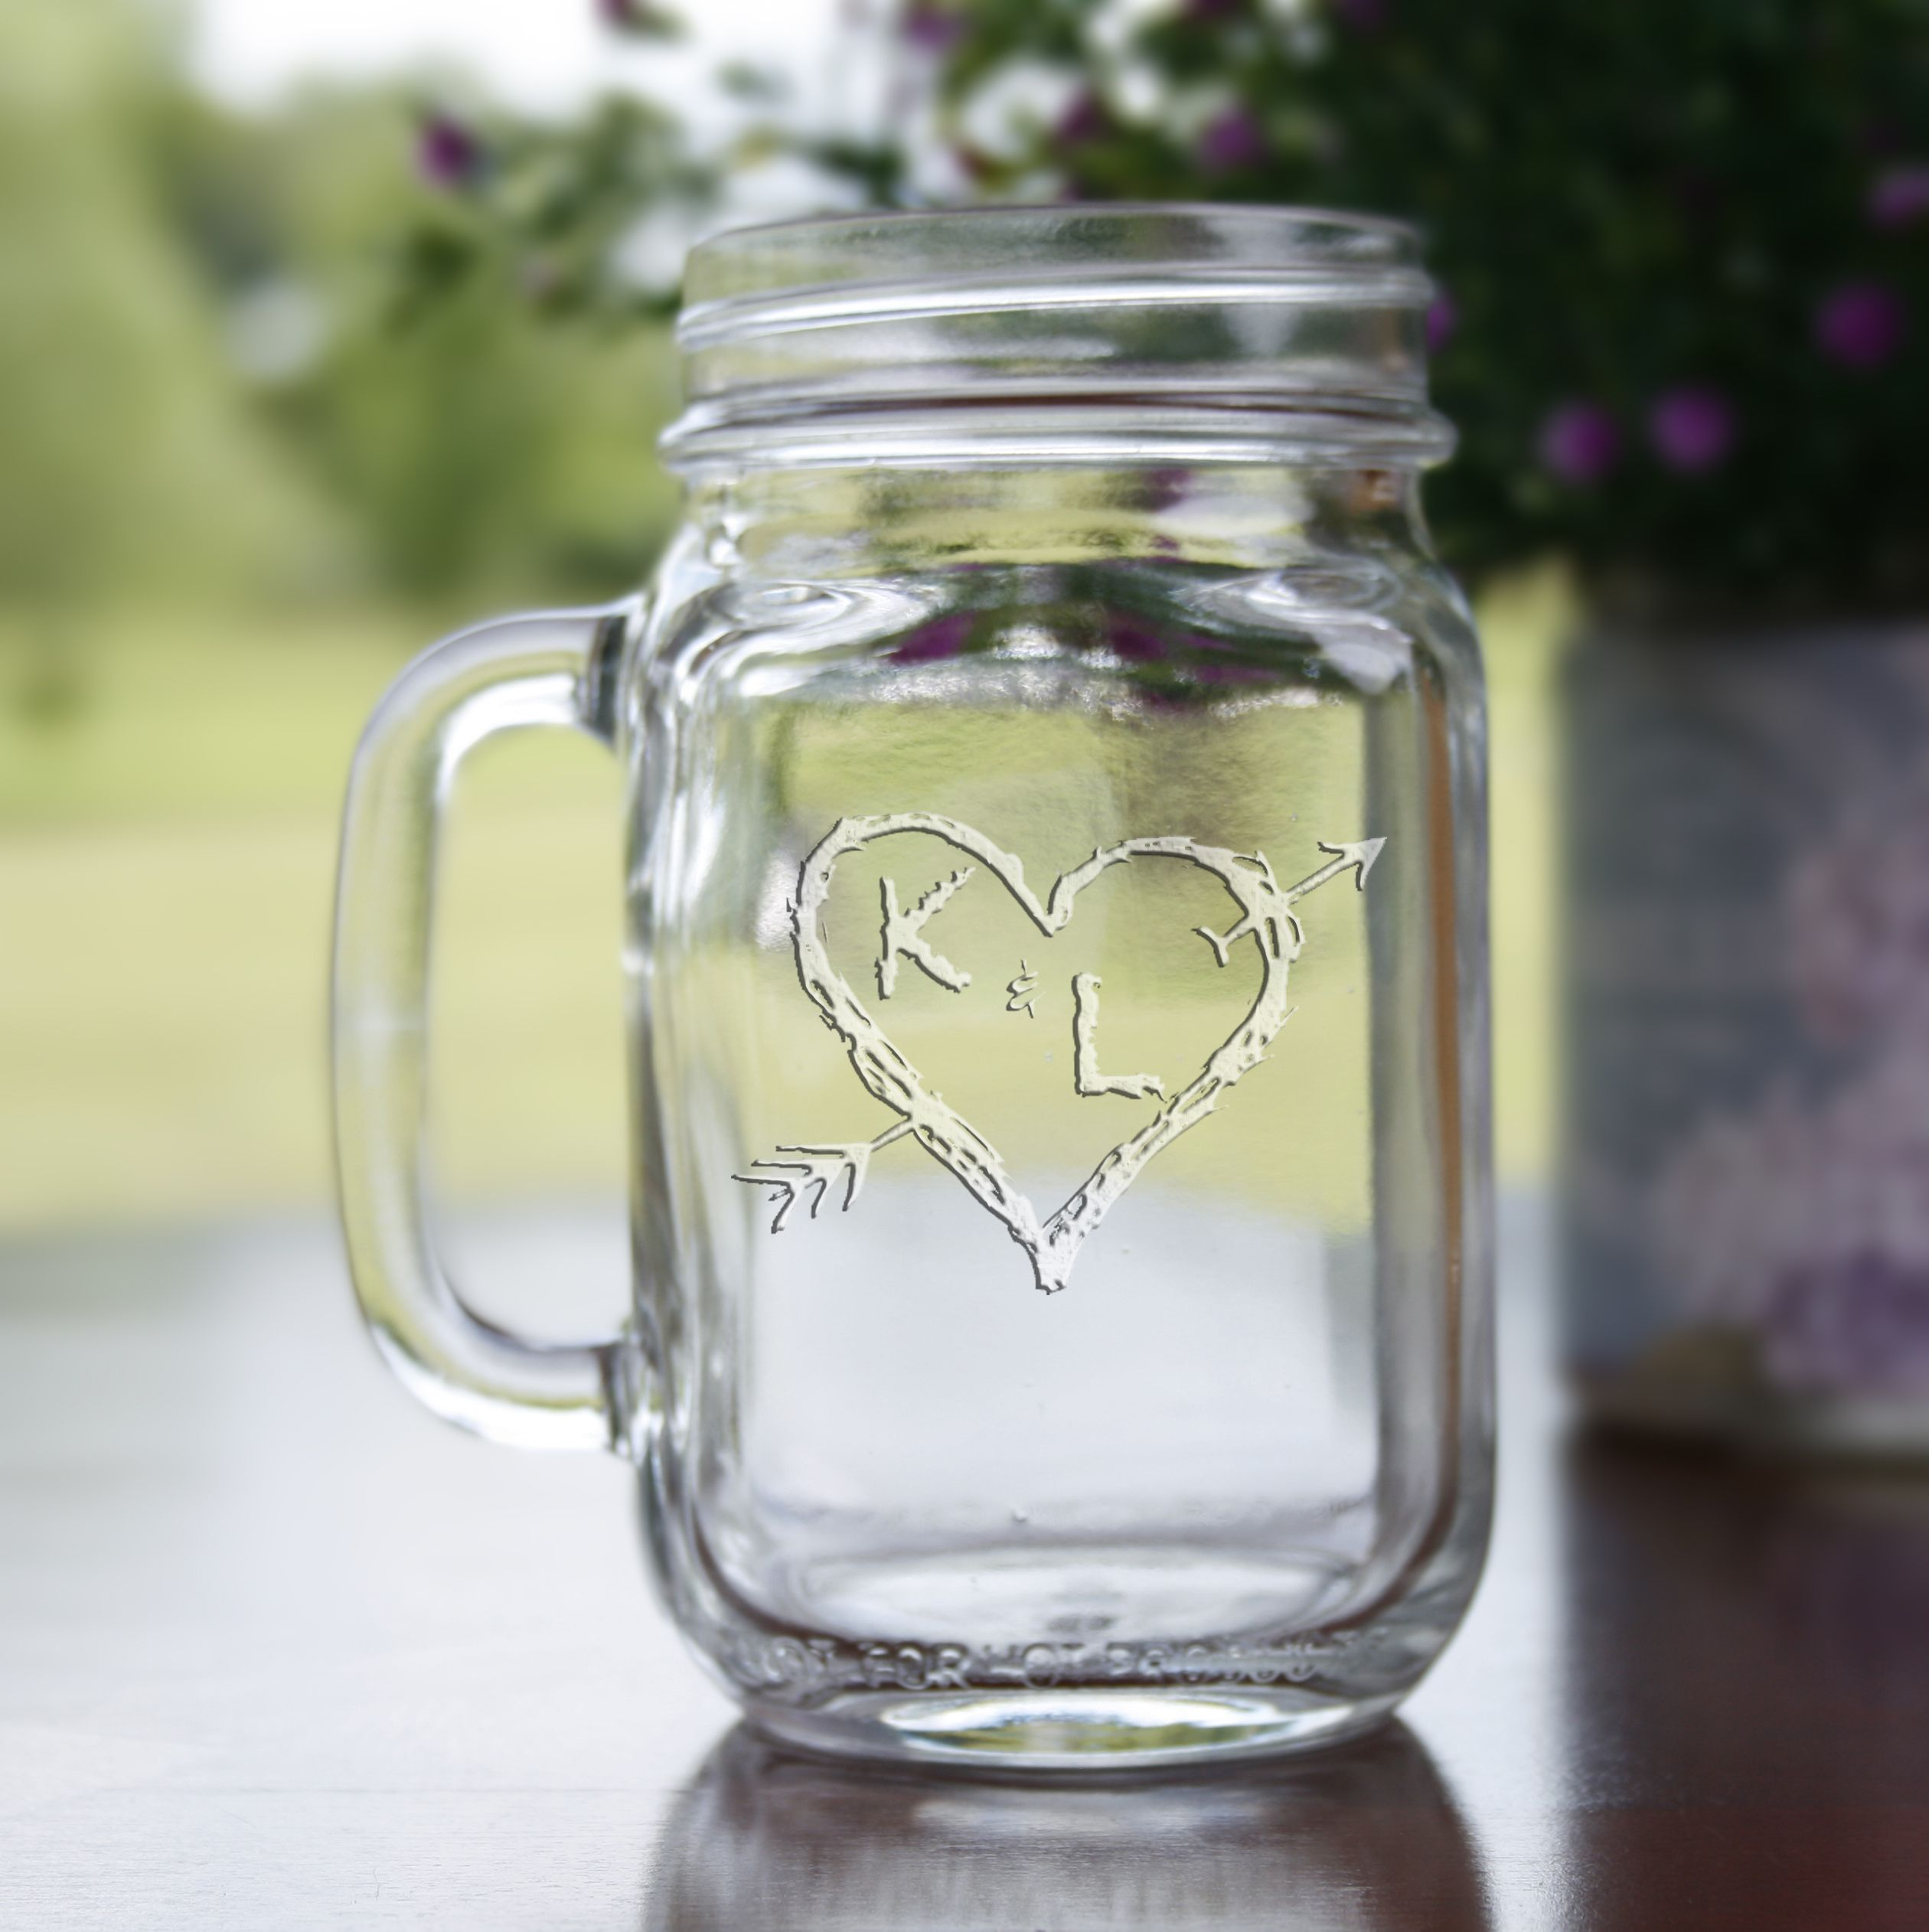 Our Engraved Mason Jar Glass Is The Perfect Wedding Gift For The Bride And Groom Bridesmaid Engraved Mason Jar Monogrammed Mason Jars Personalized Mason Jars